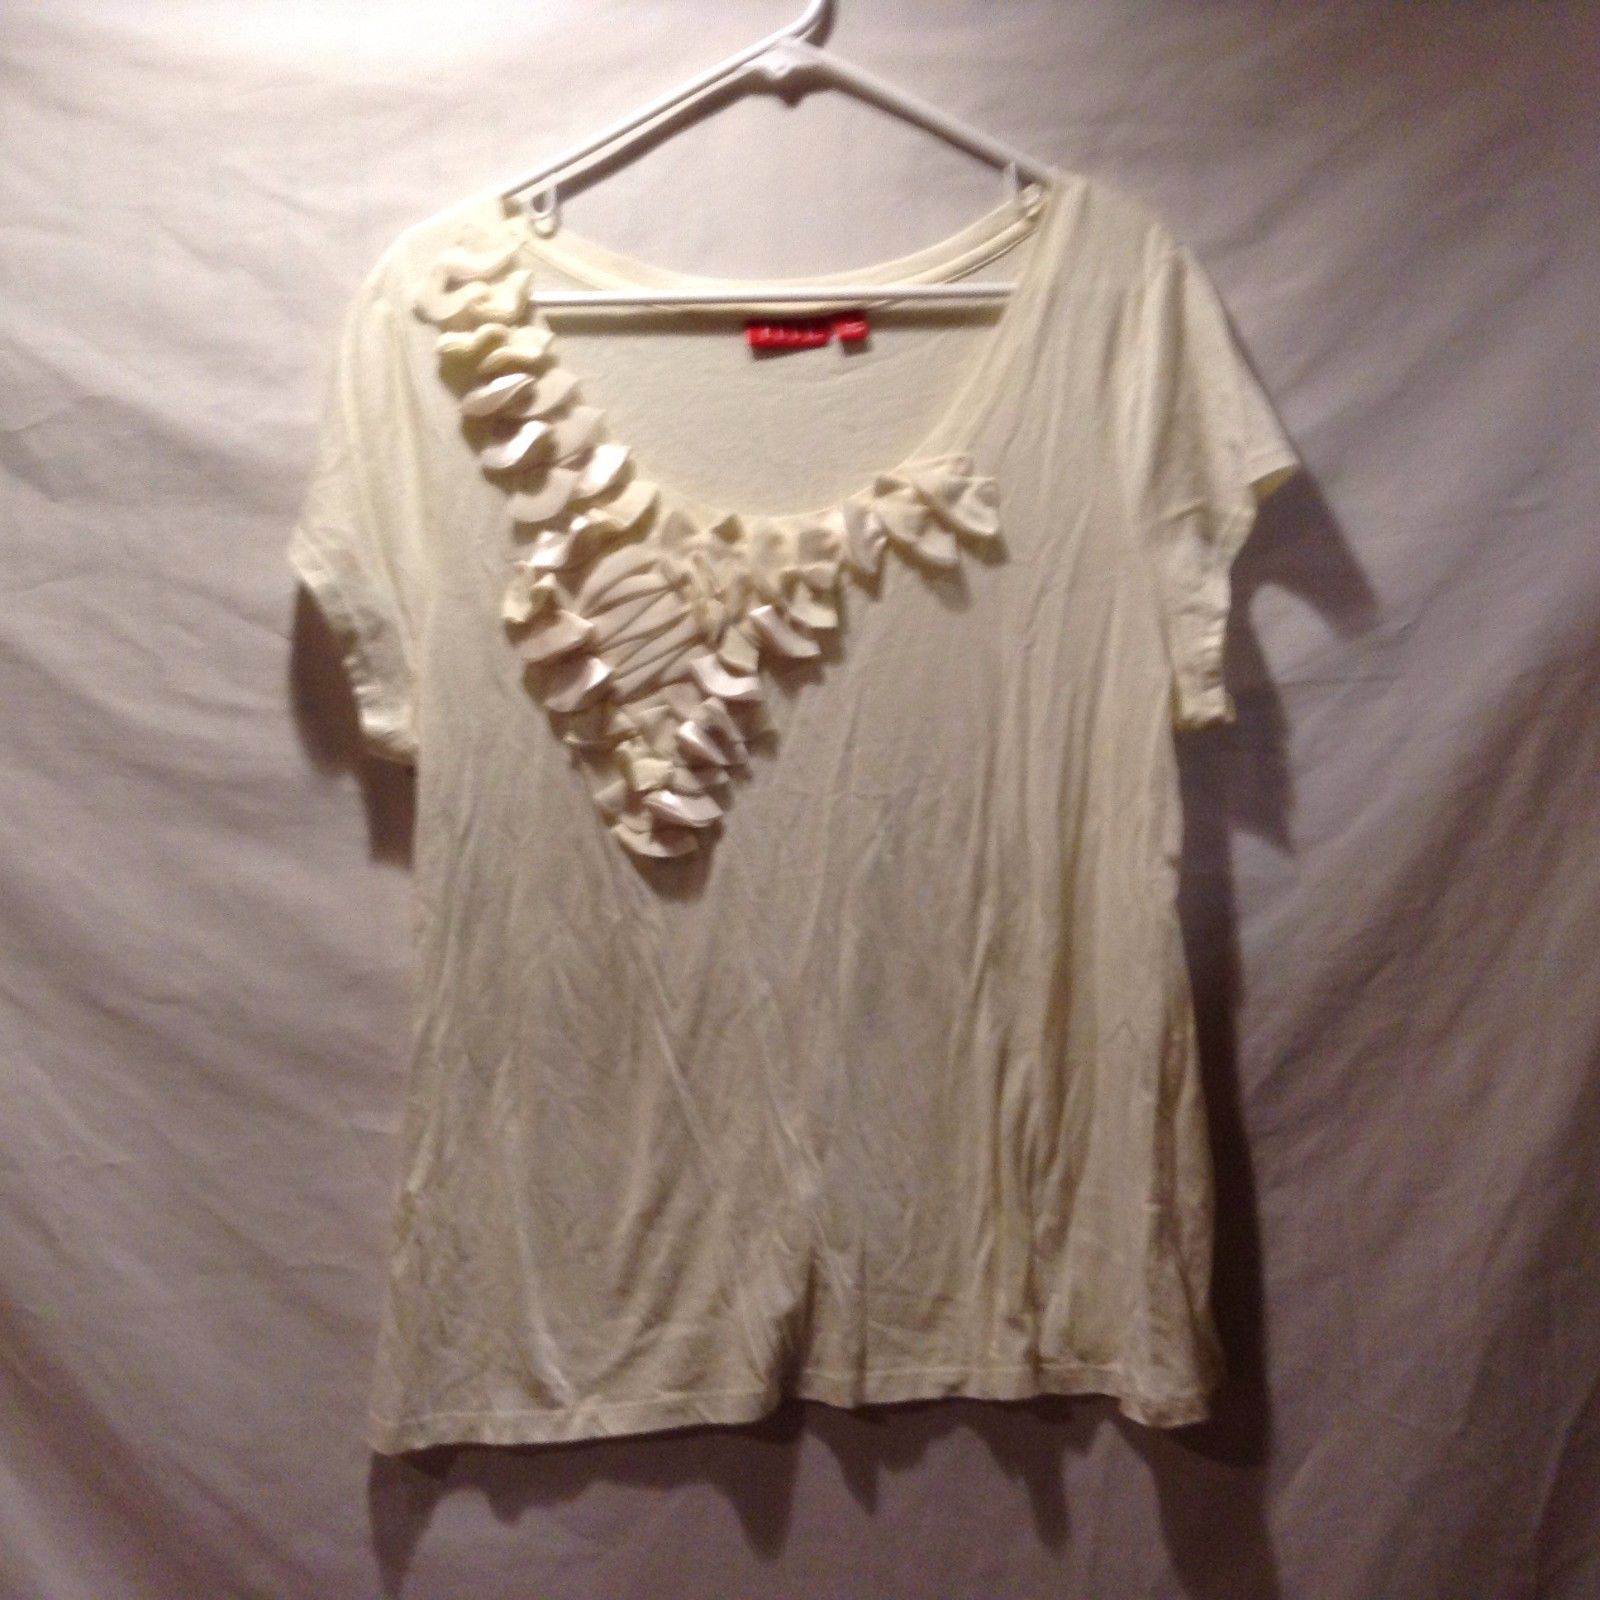 Elle Scoop Neck Cream Colored Shirt w Floral Embroidery Sz XL